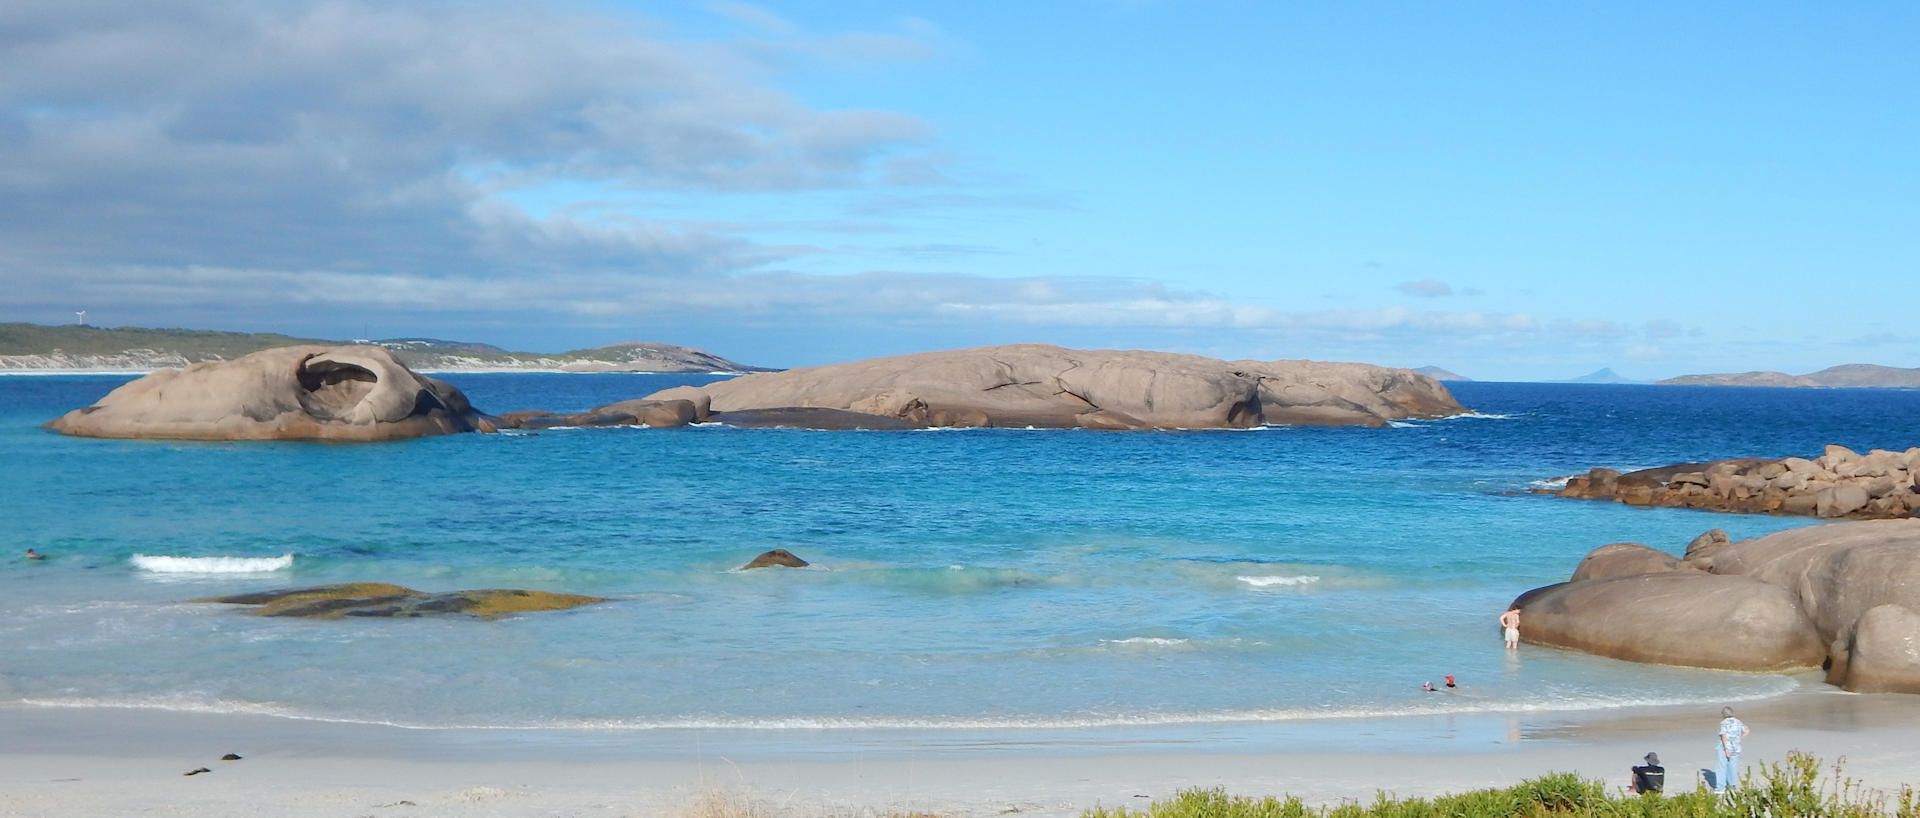 Twilight Cove, Esperance, seniors tours to esperance, seniors tours australia, seniors tours ex perth